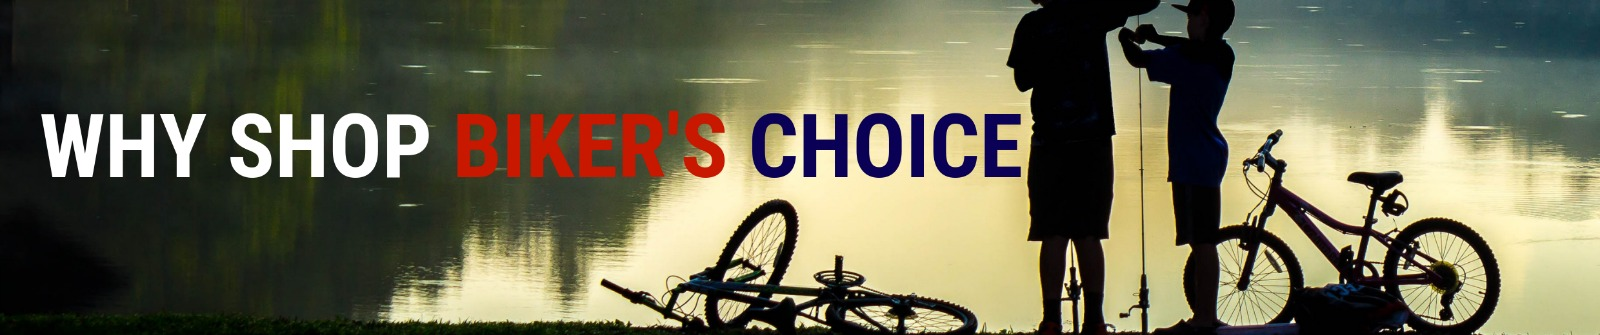 Why Shop Biker's Choice